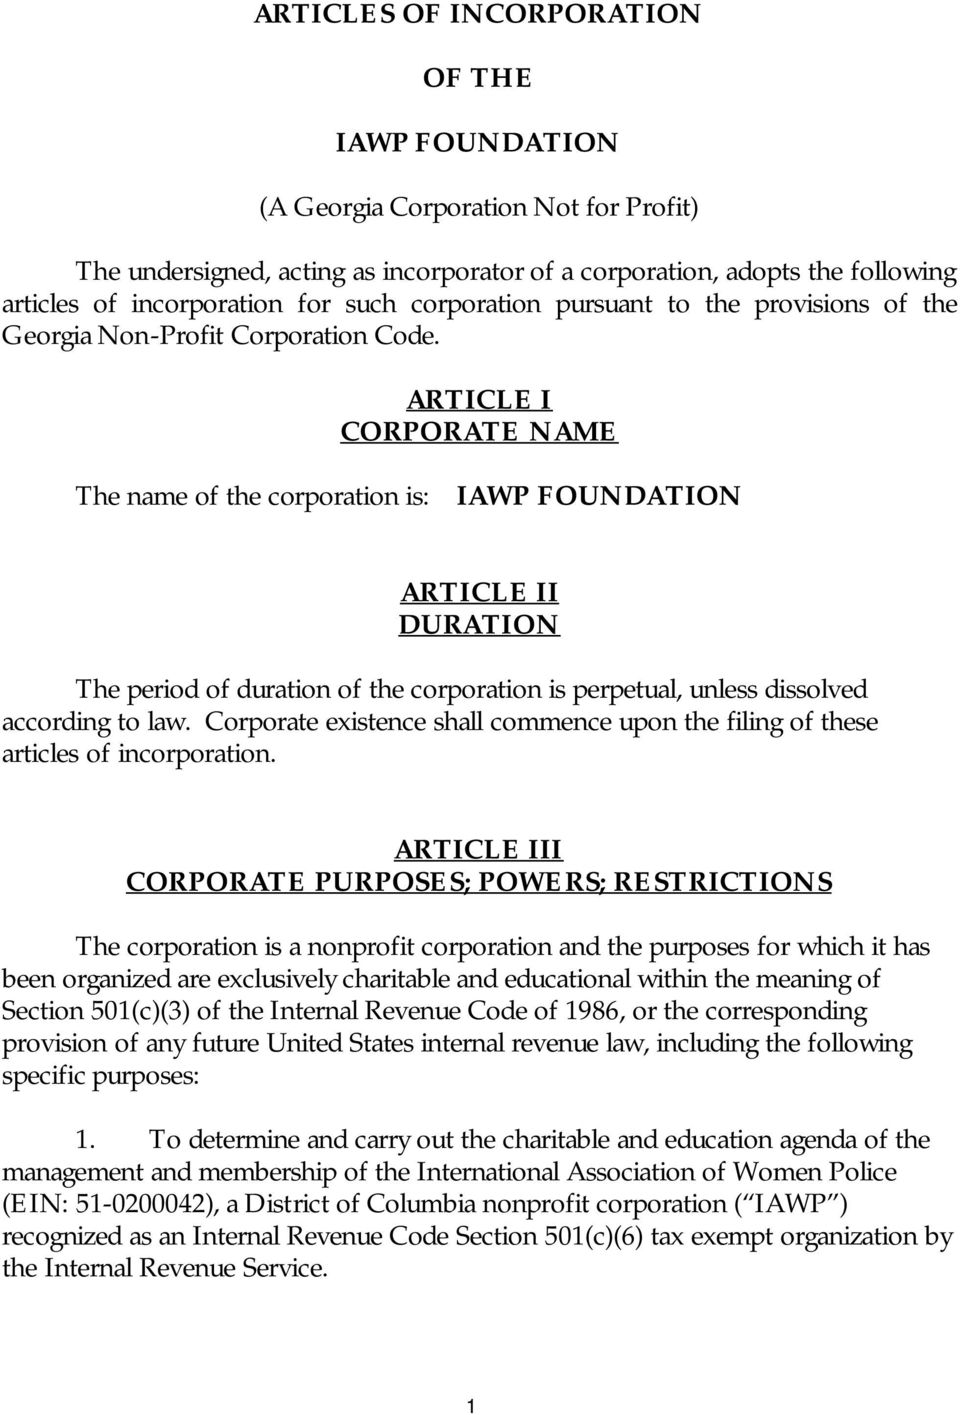 ARTICLE I CORPORATE NAME The name of the corporation is: IAWP FOUNDATION ARTICLE II DURATION The period of duration of the corporation is perpetual, unless dissolved according to law.